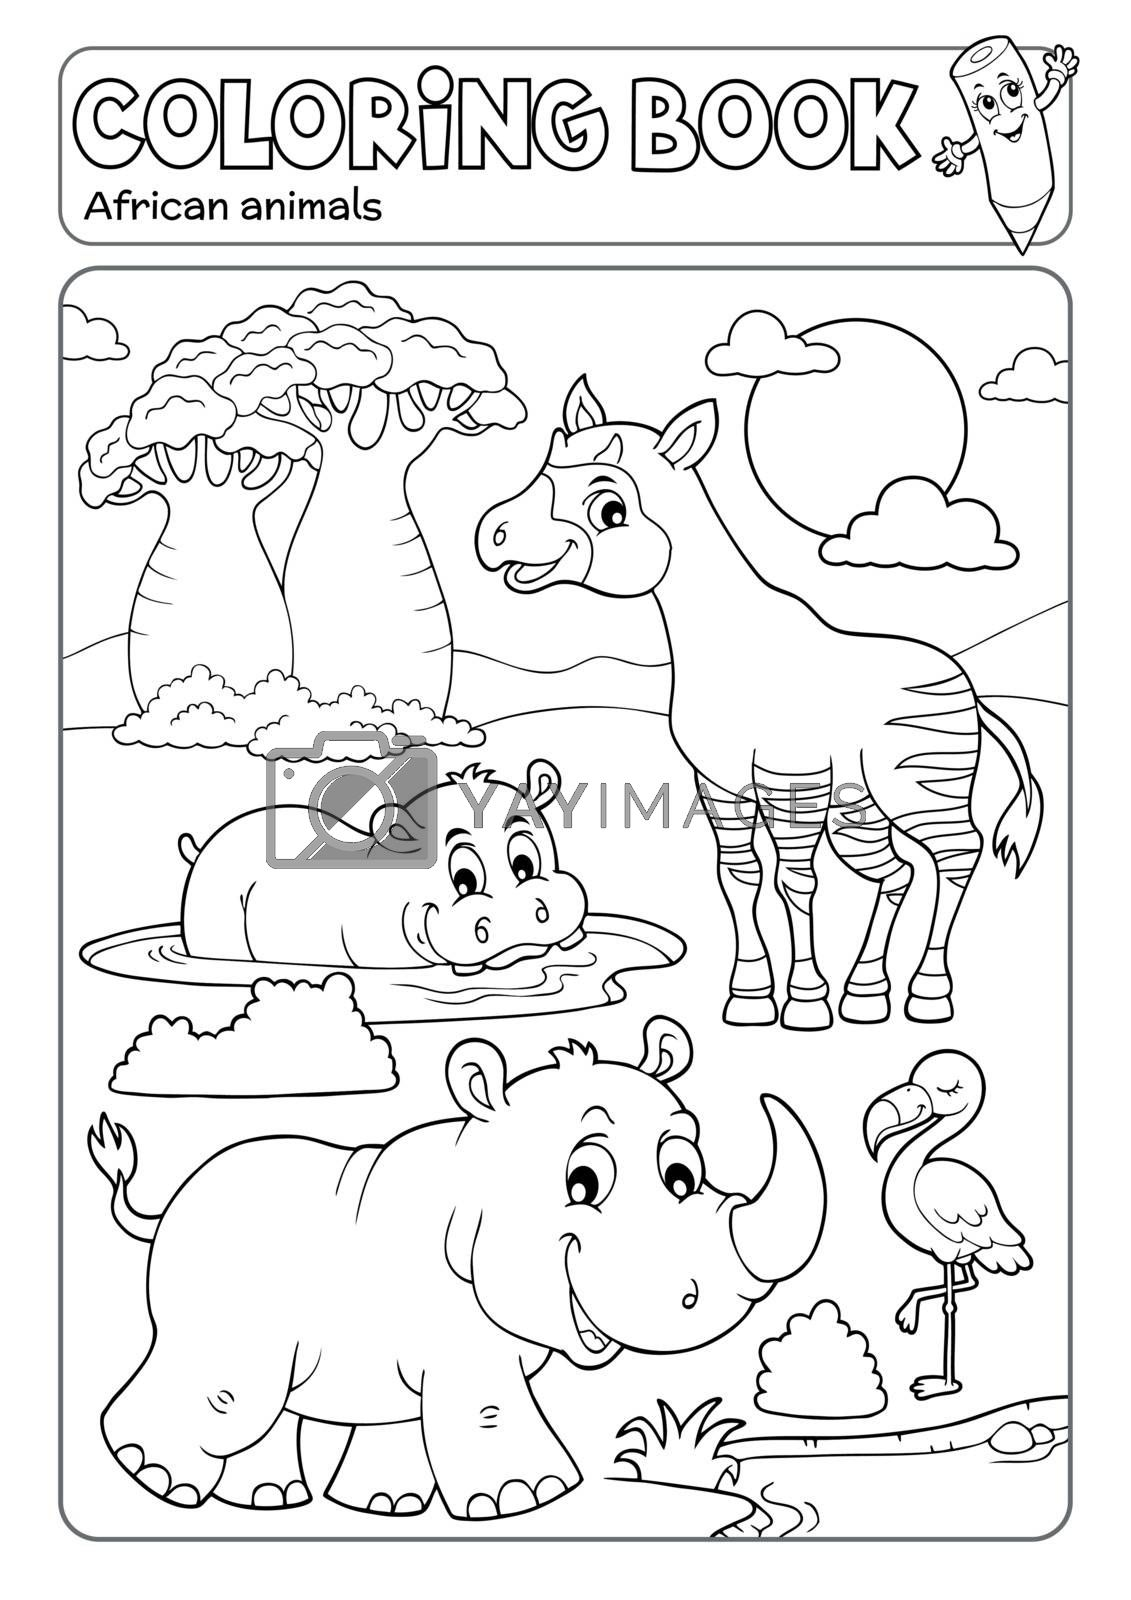 Coloring book African fauna 4 - eps10 vector illustration.